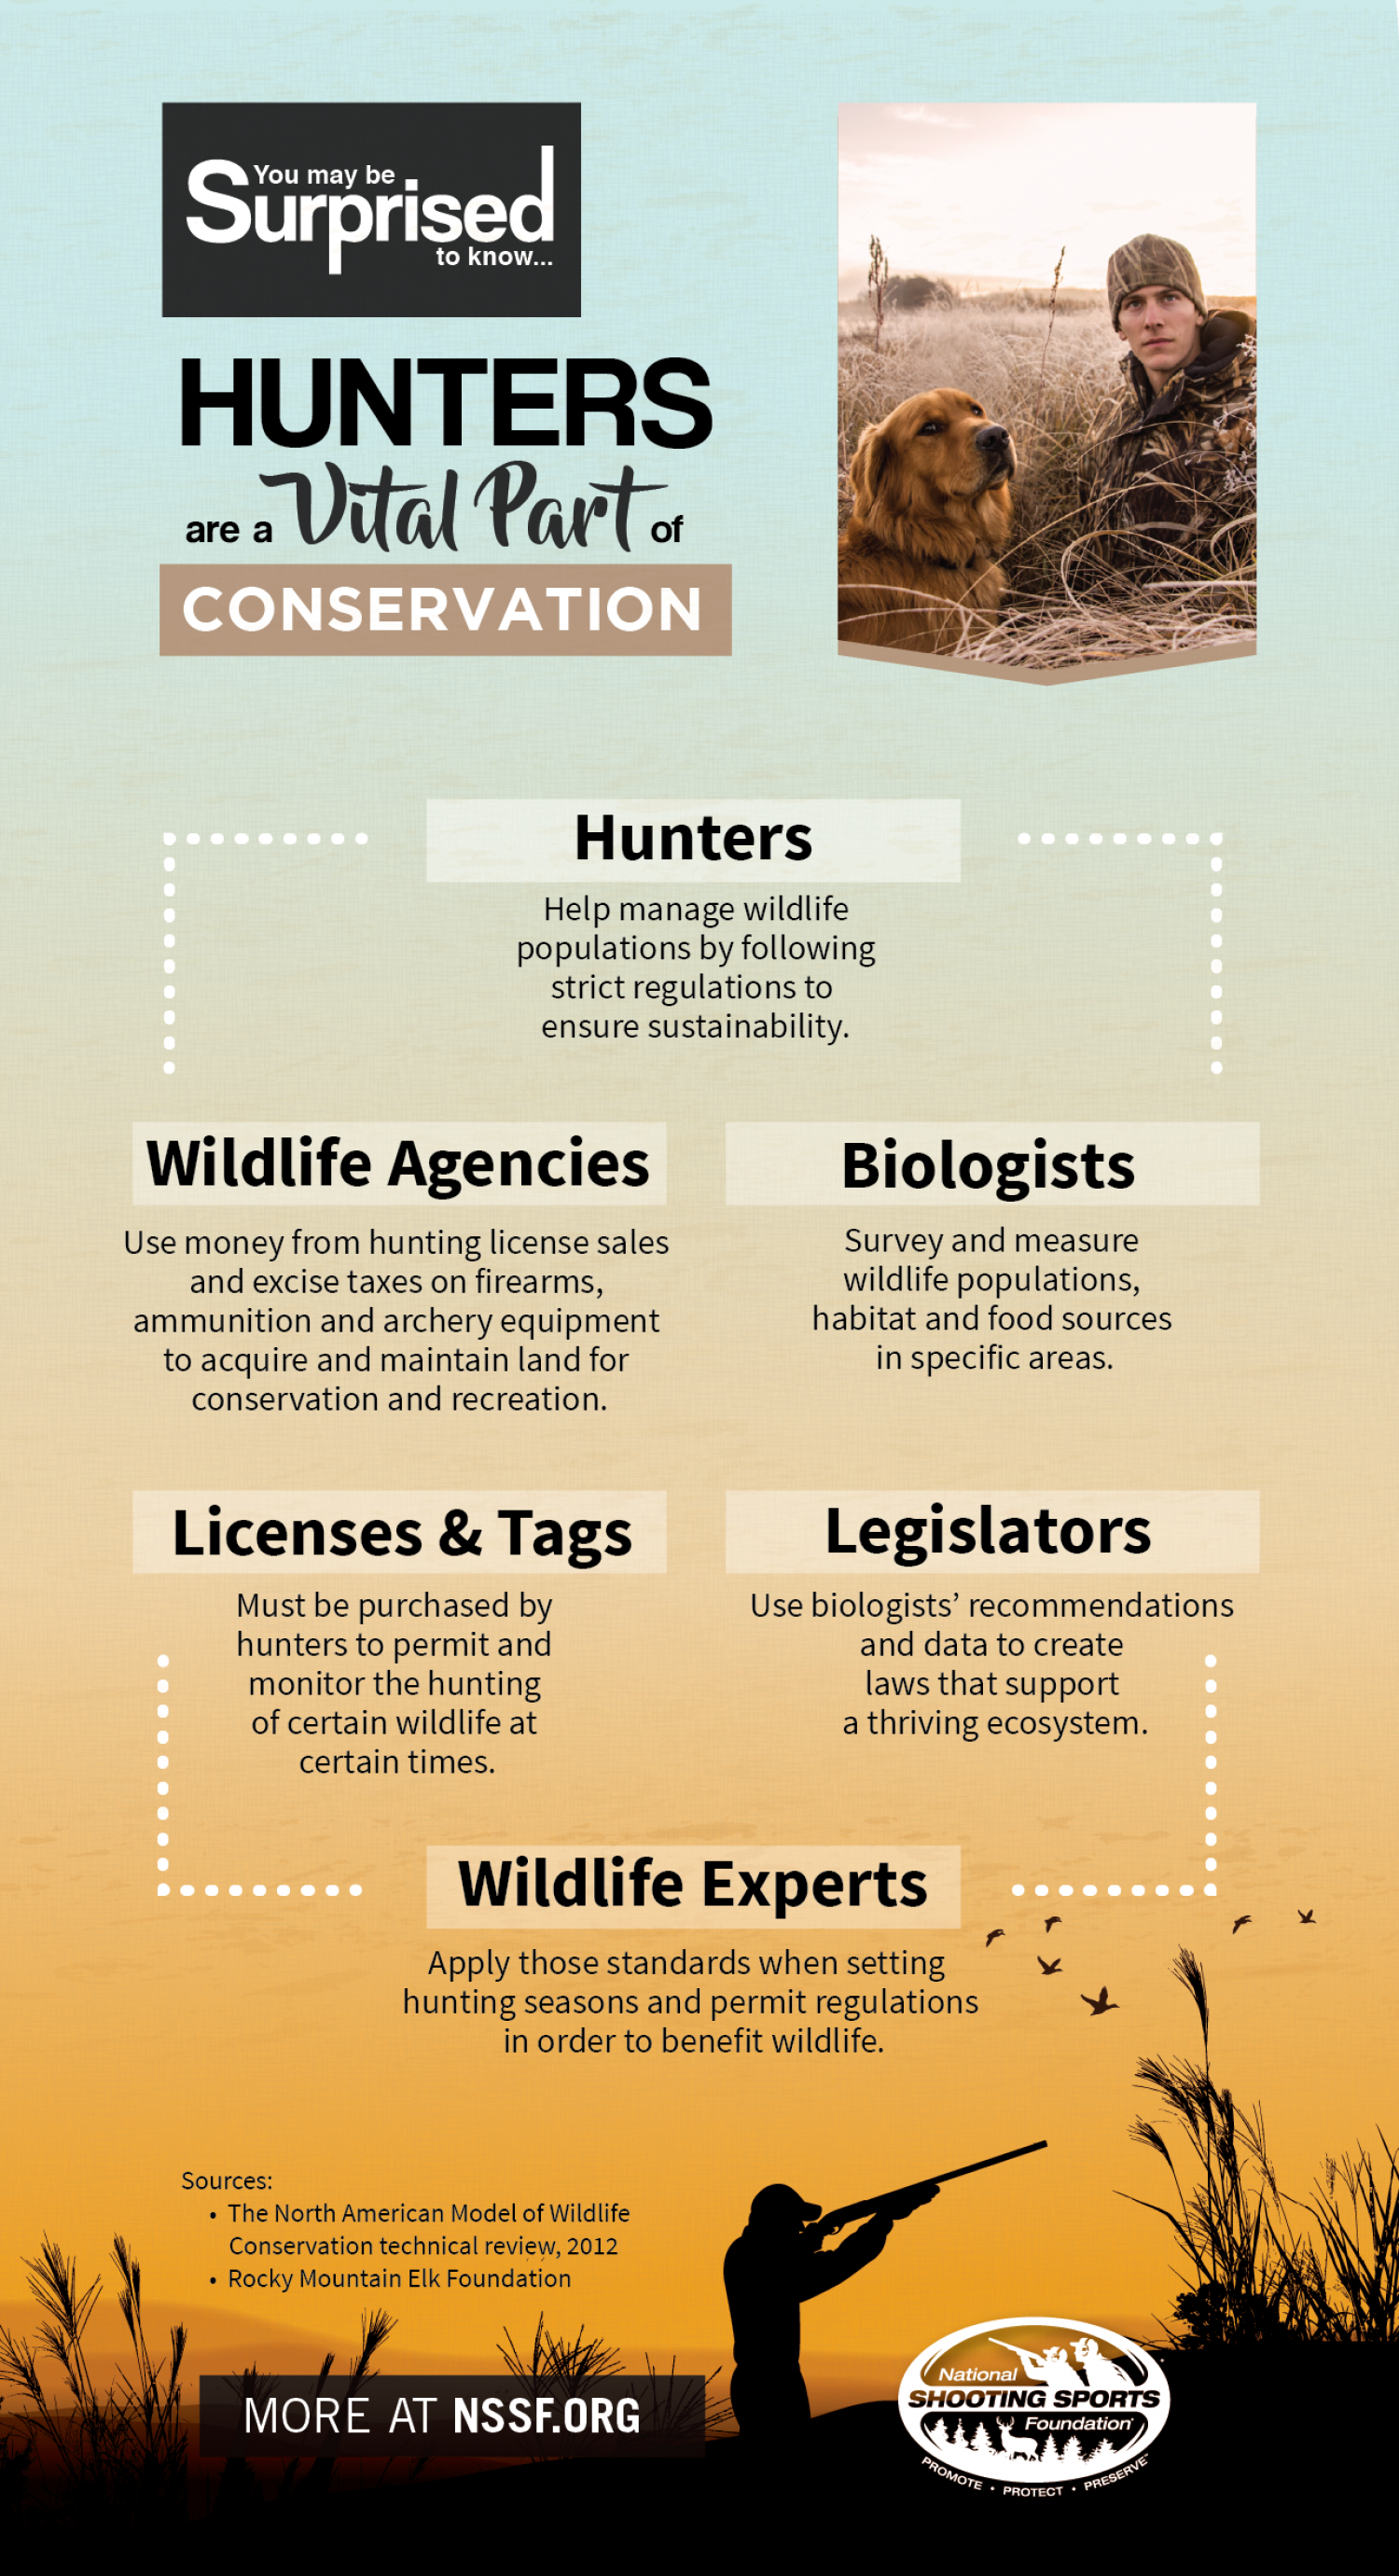 Hunters are a Vital Part of Conservation